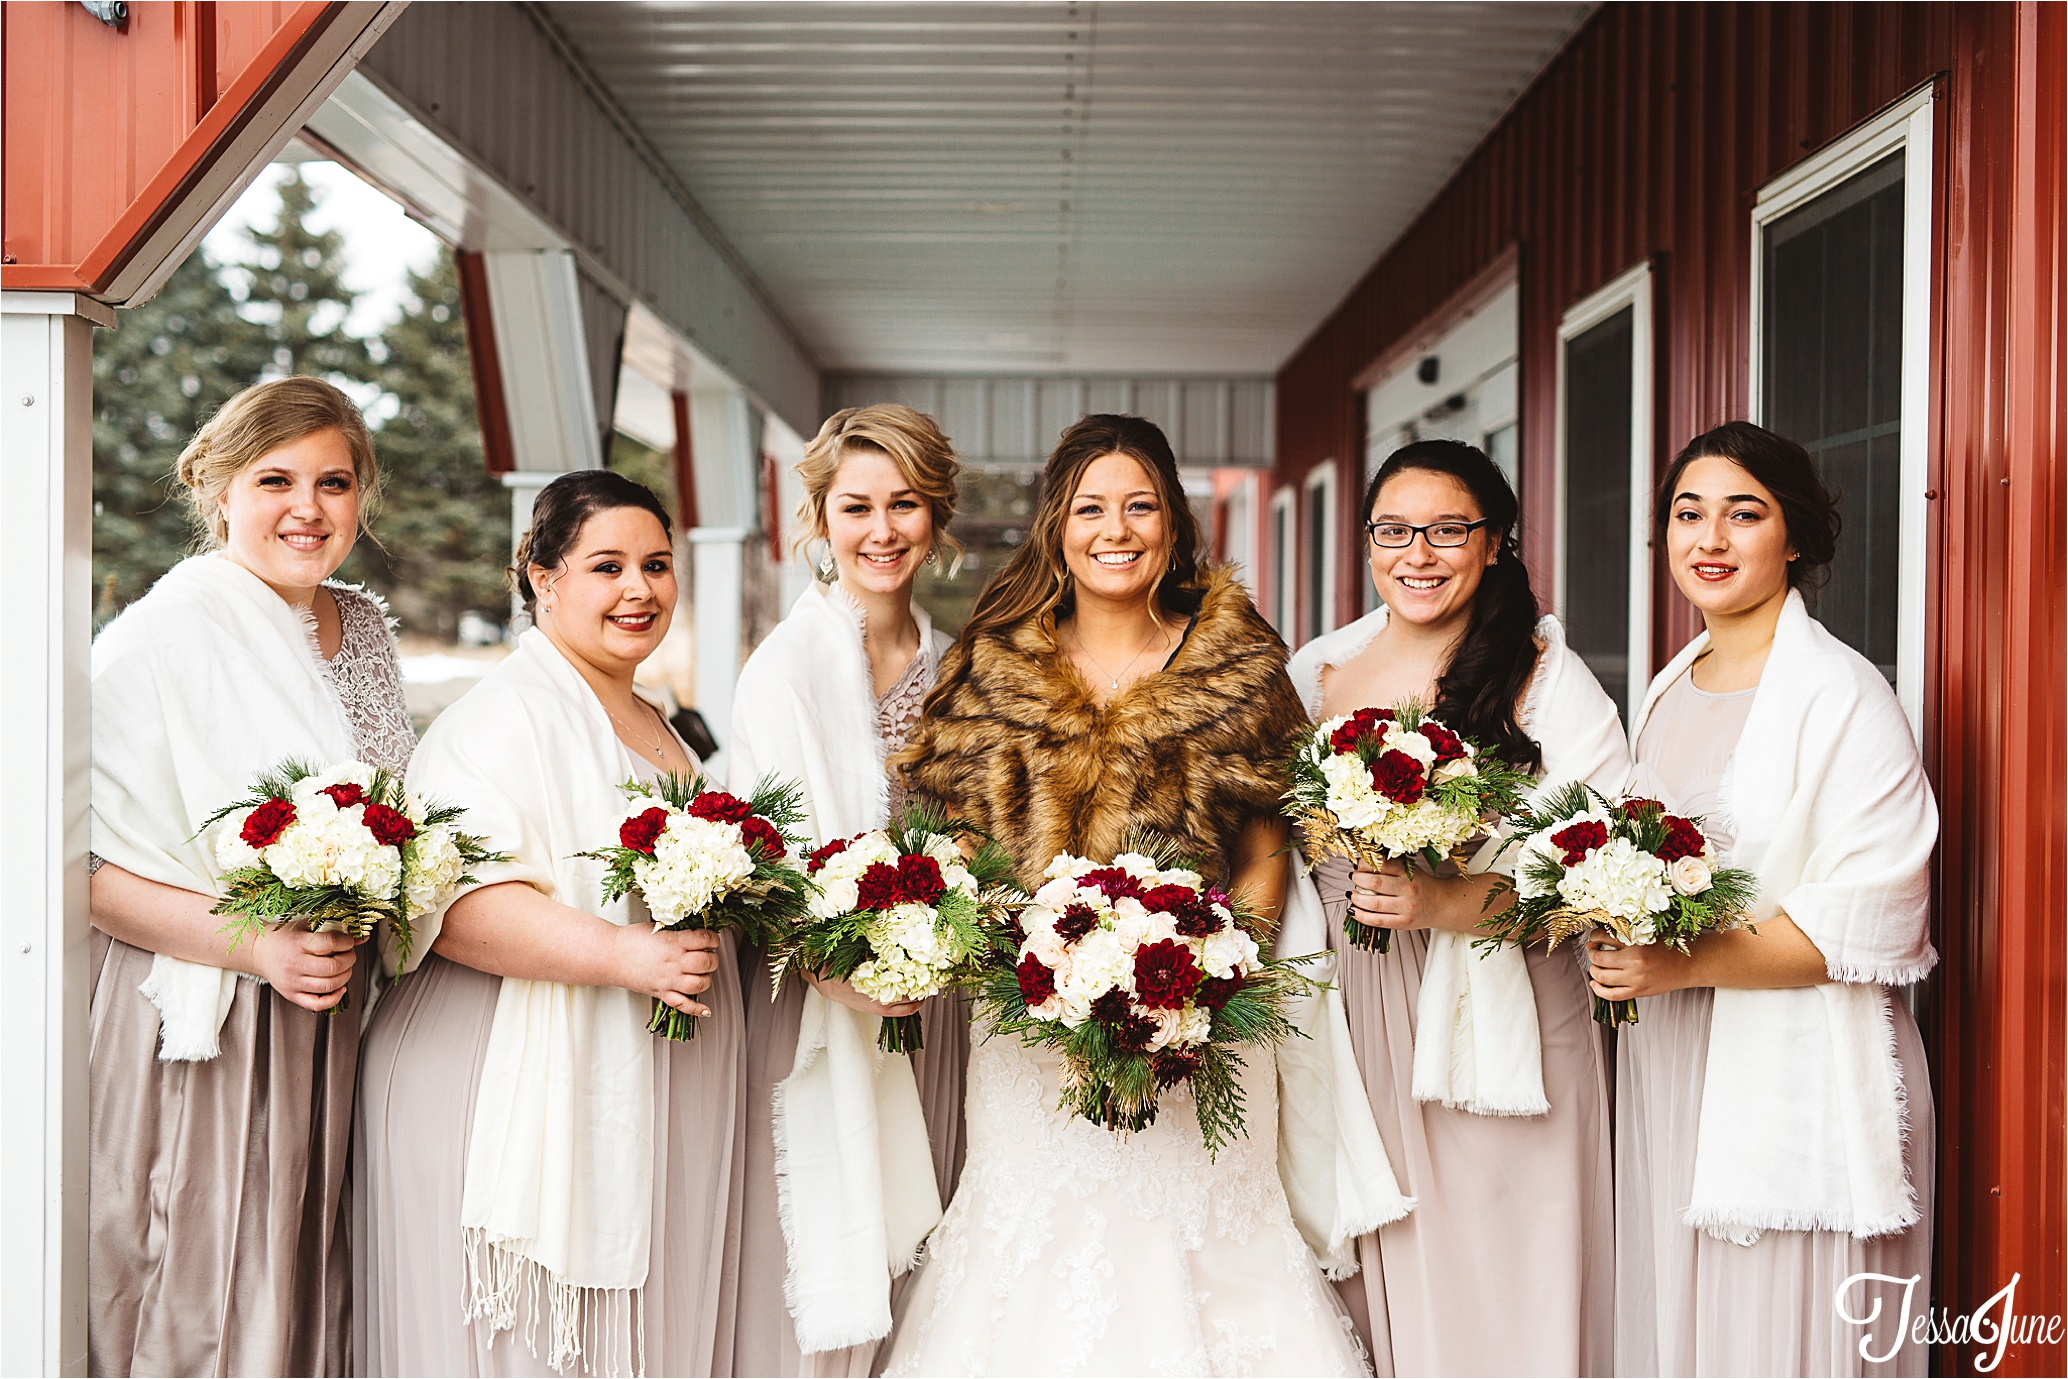 st-cloud-minnesota-wedding-photographer-the-outpost-center-chaska-snow-winter-romantic-bridesmaids